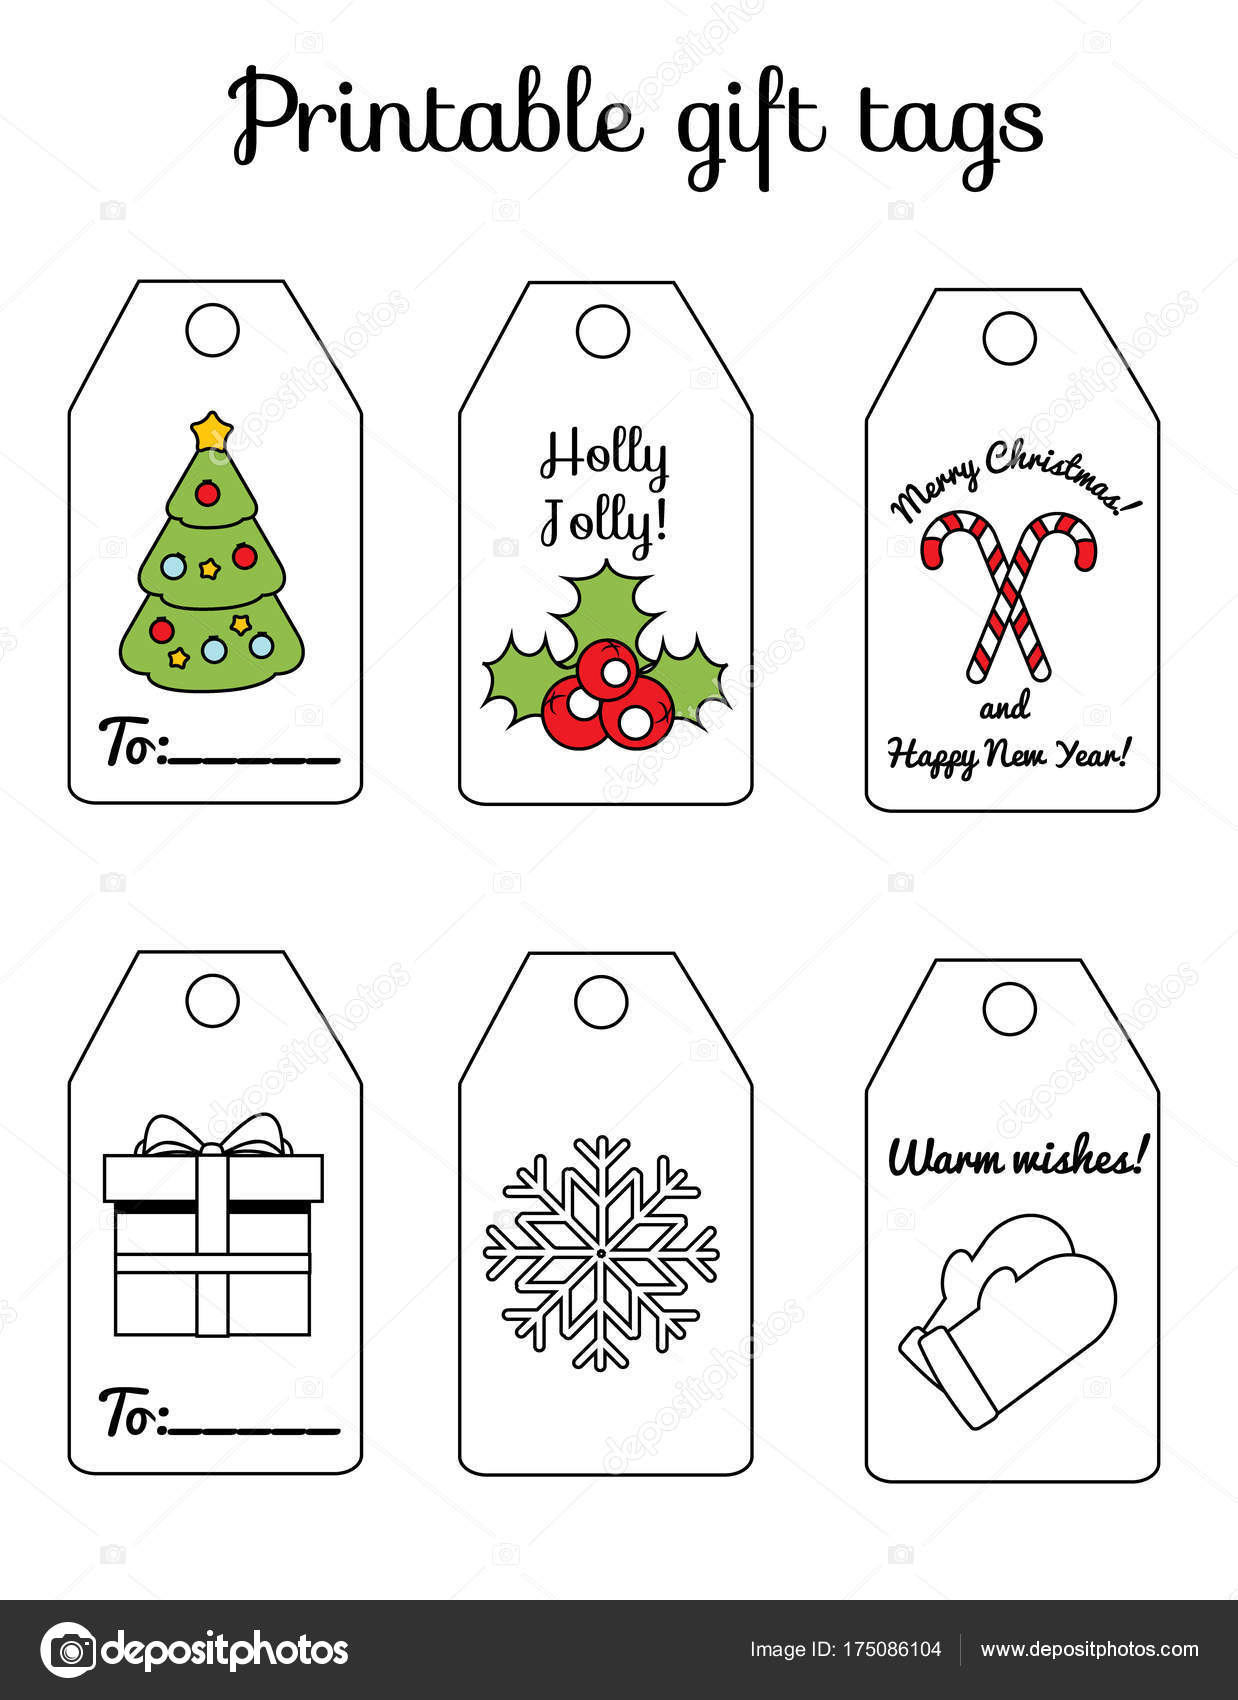 printable christmas and new year gift tags winter holidays greetings and decorations for scrapbook and